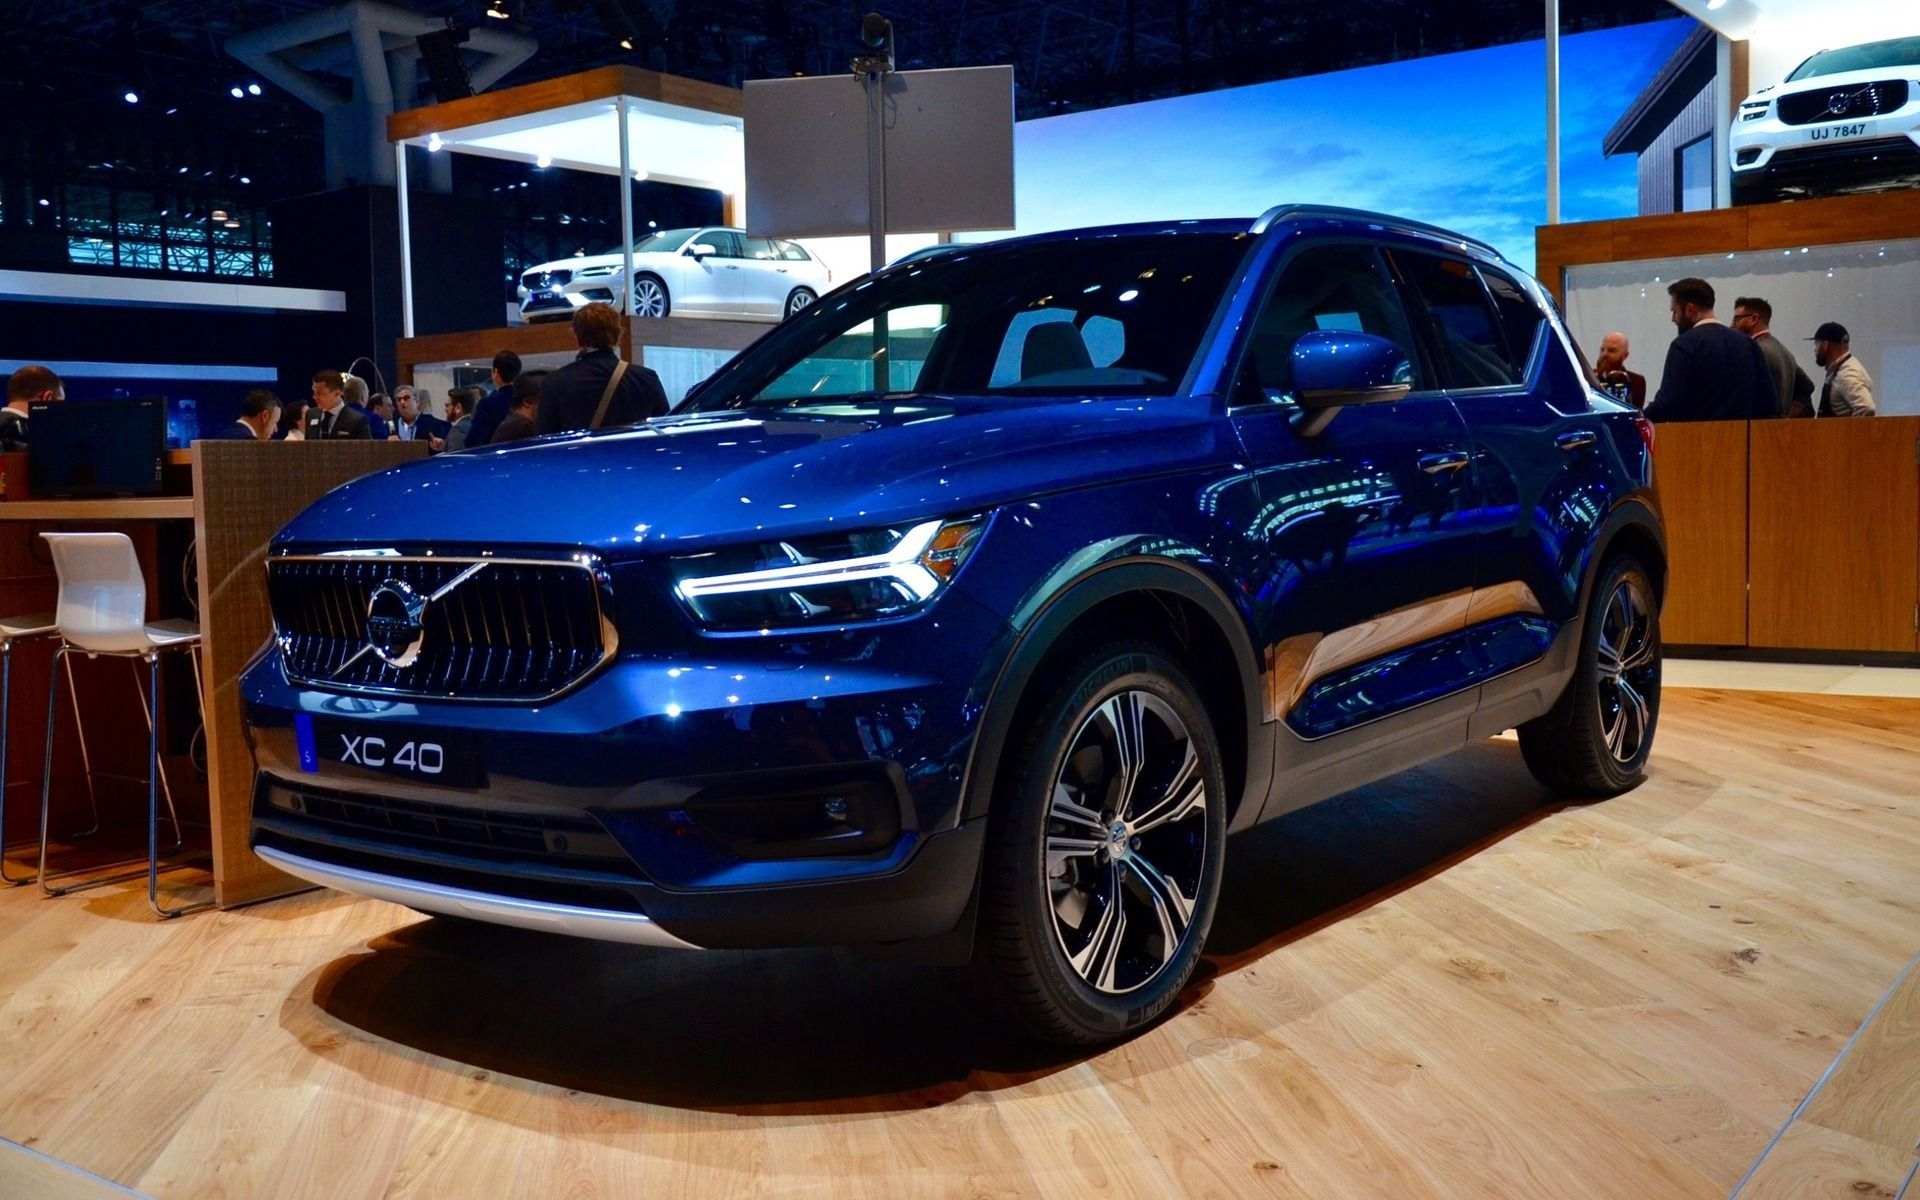 Volvo Xc40 2019 Video Review Suv Volvo Xc40 Automotoreview Com